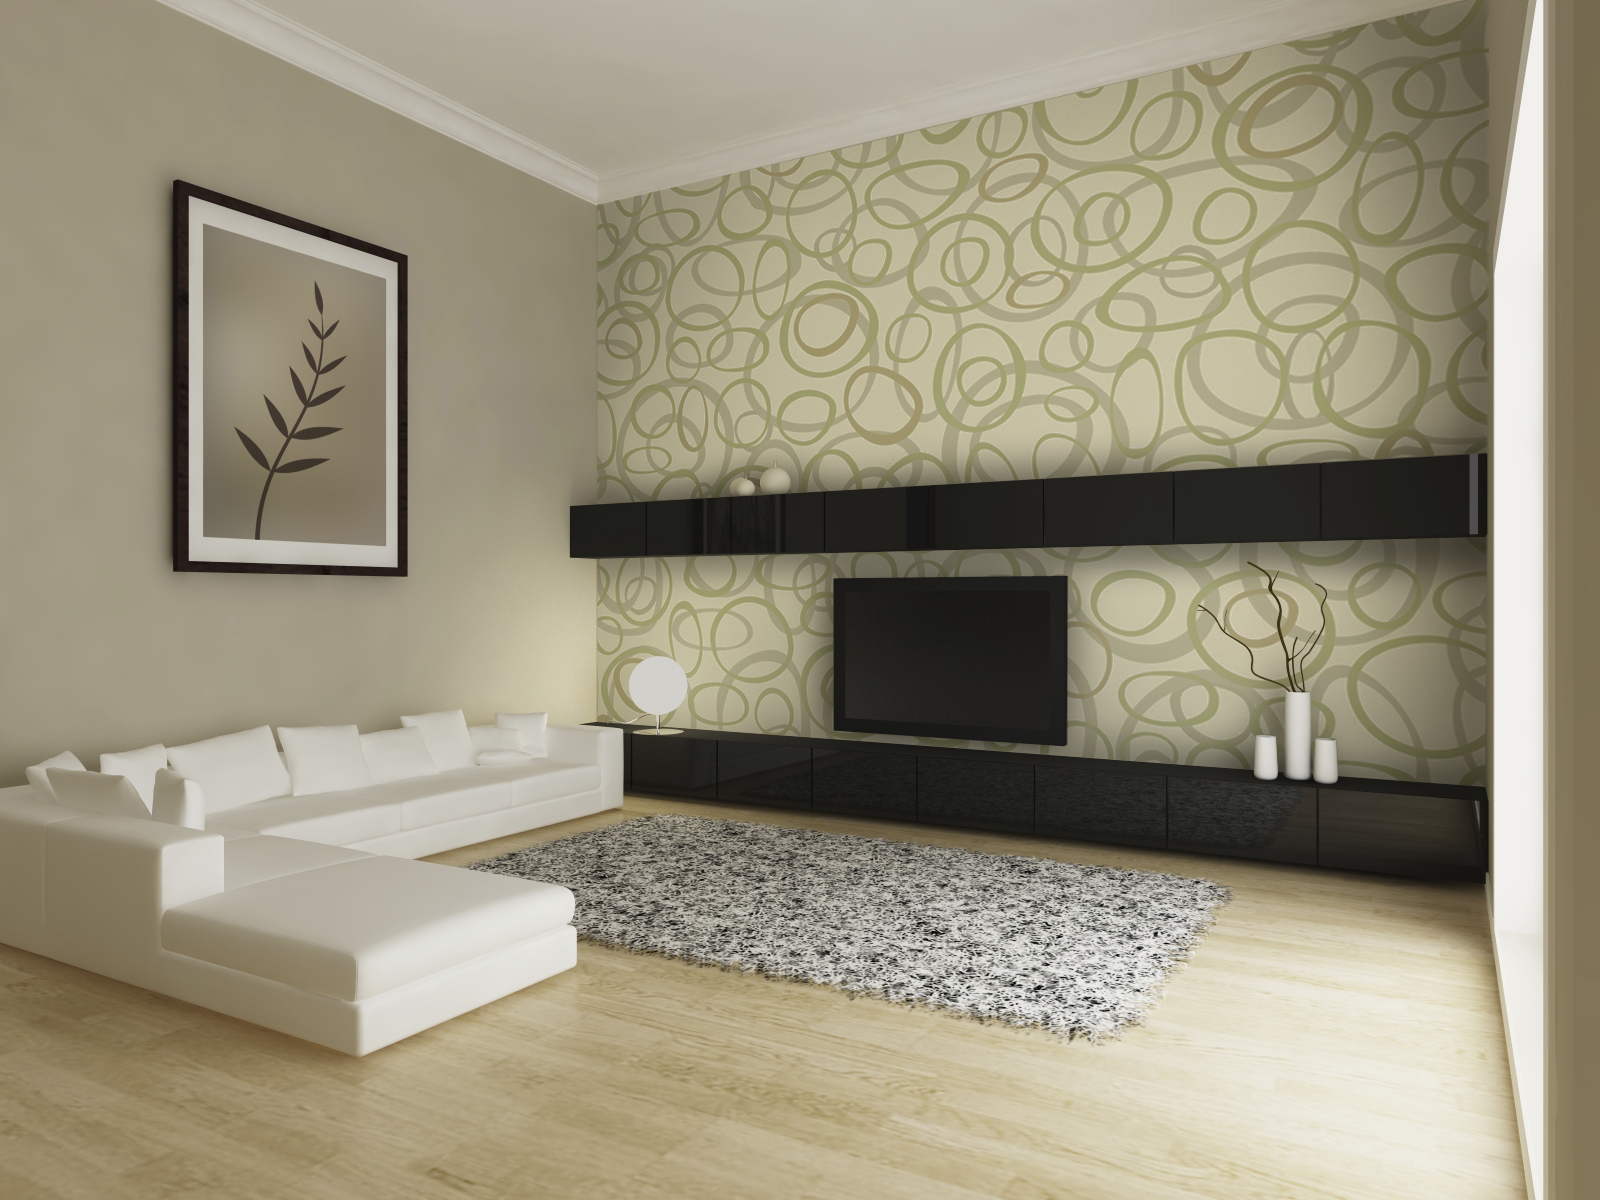 Interior Wallpaper For Home 2 Designs